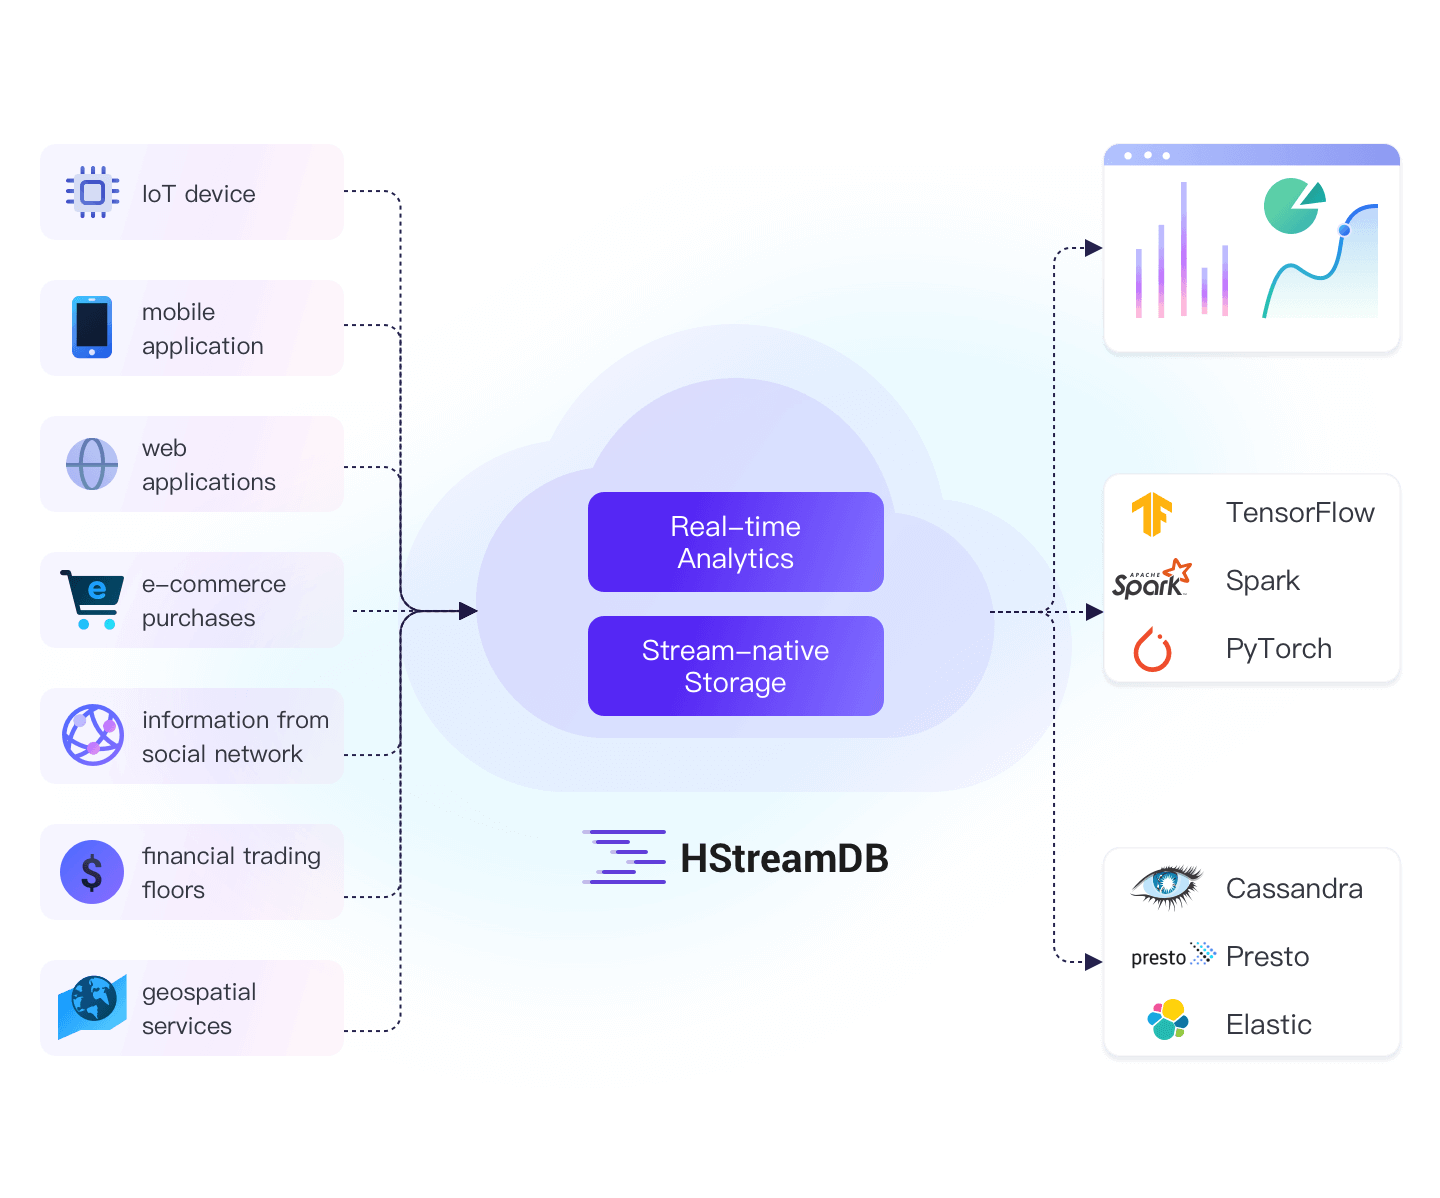 A cloud-native streaming database for IoT data storage and real-time processing